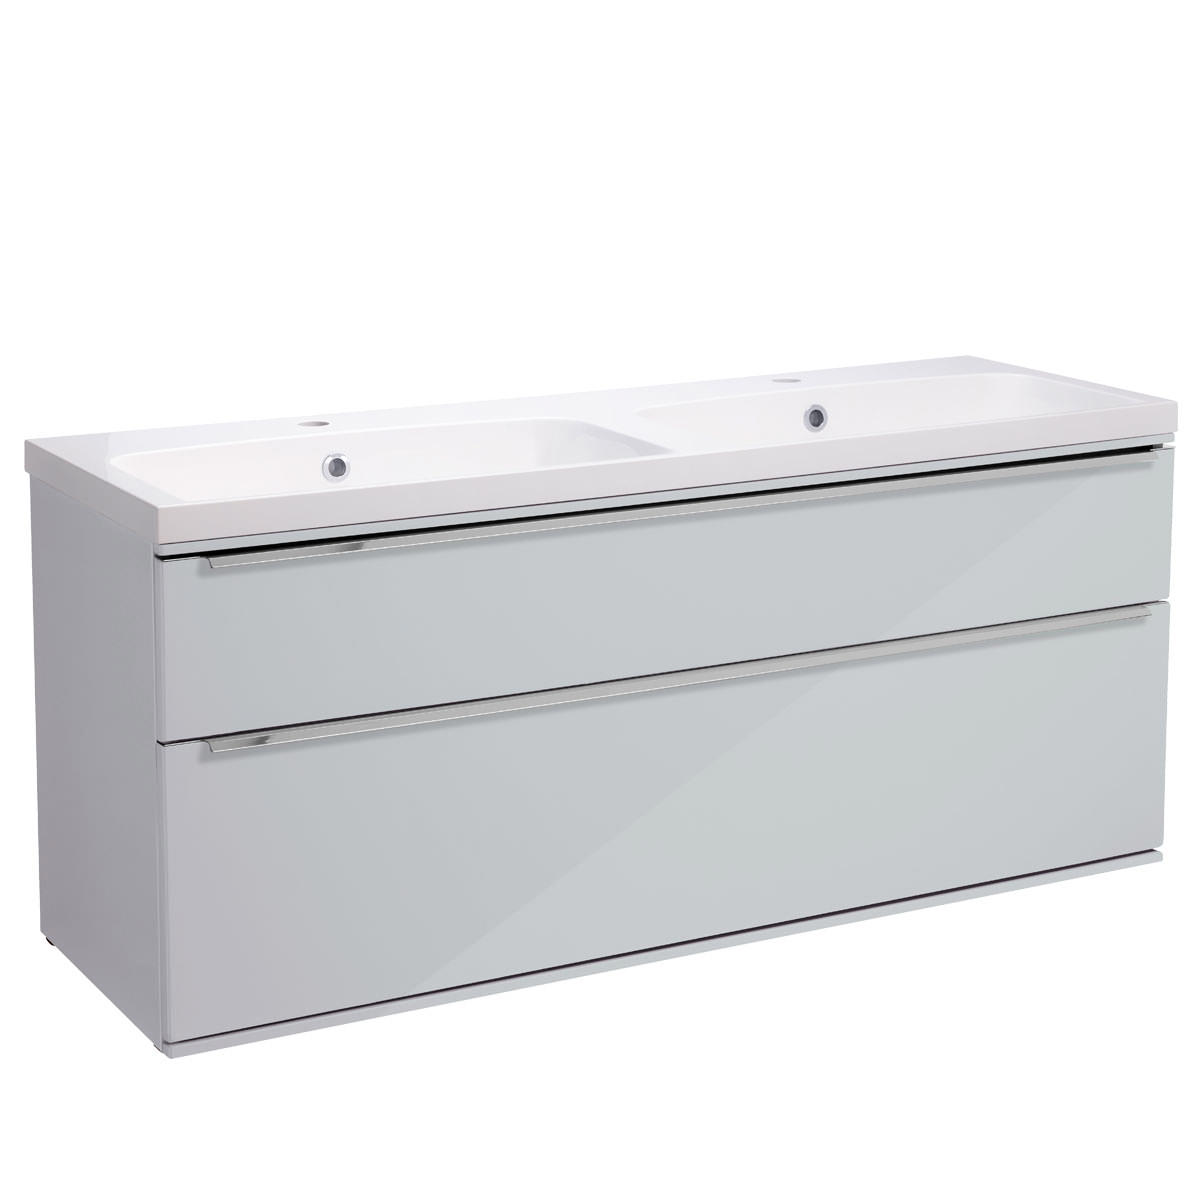 1200mm Vanity Units Roper Rhodes Scheme 1200mm Gloss White Wall Mounted Vanity